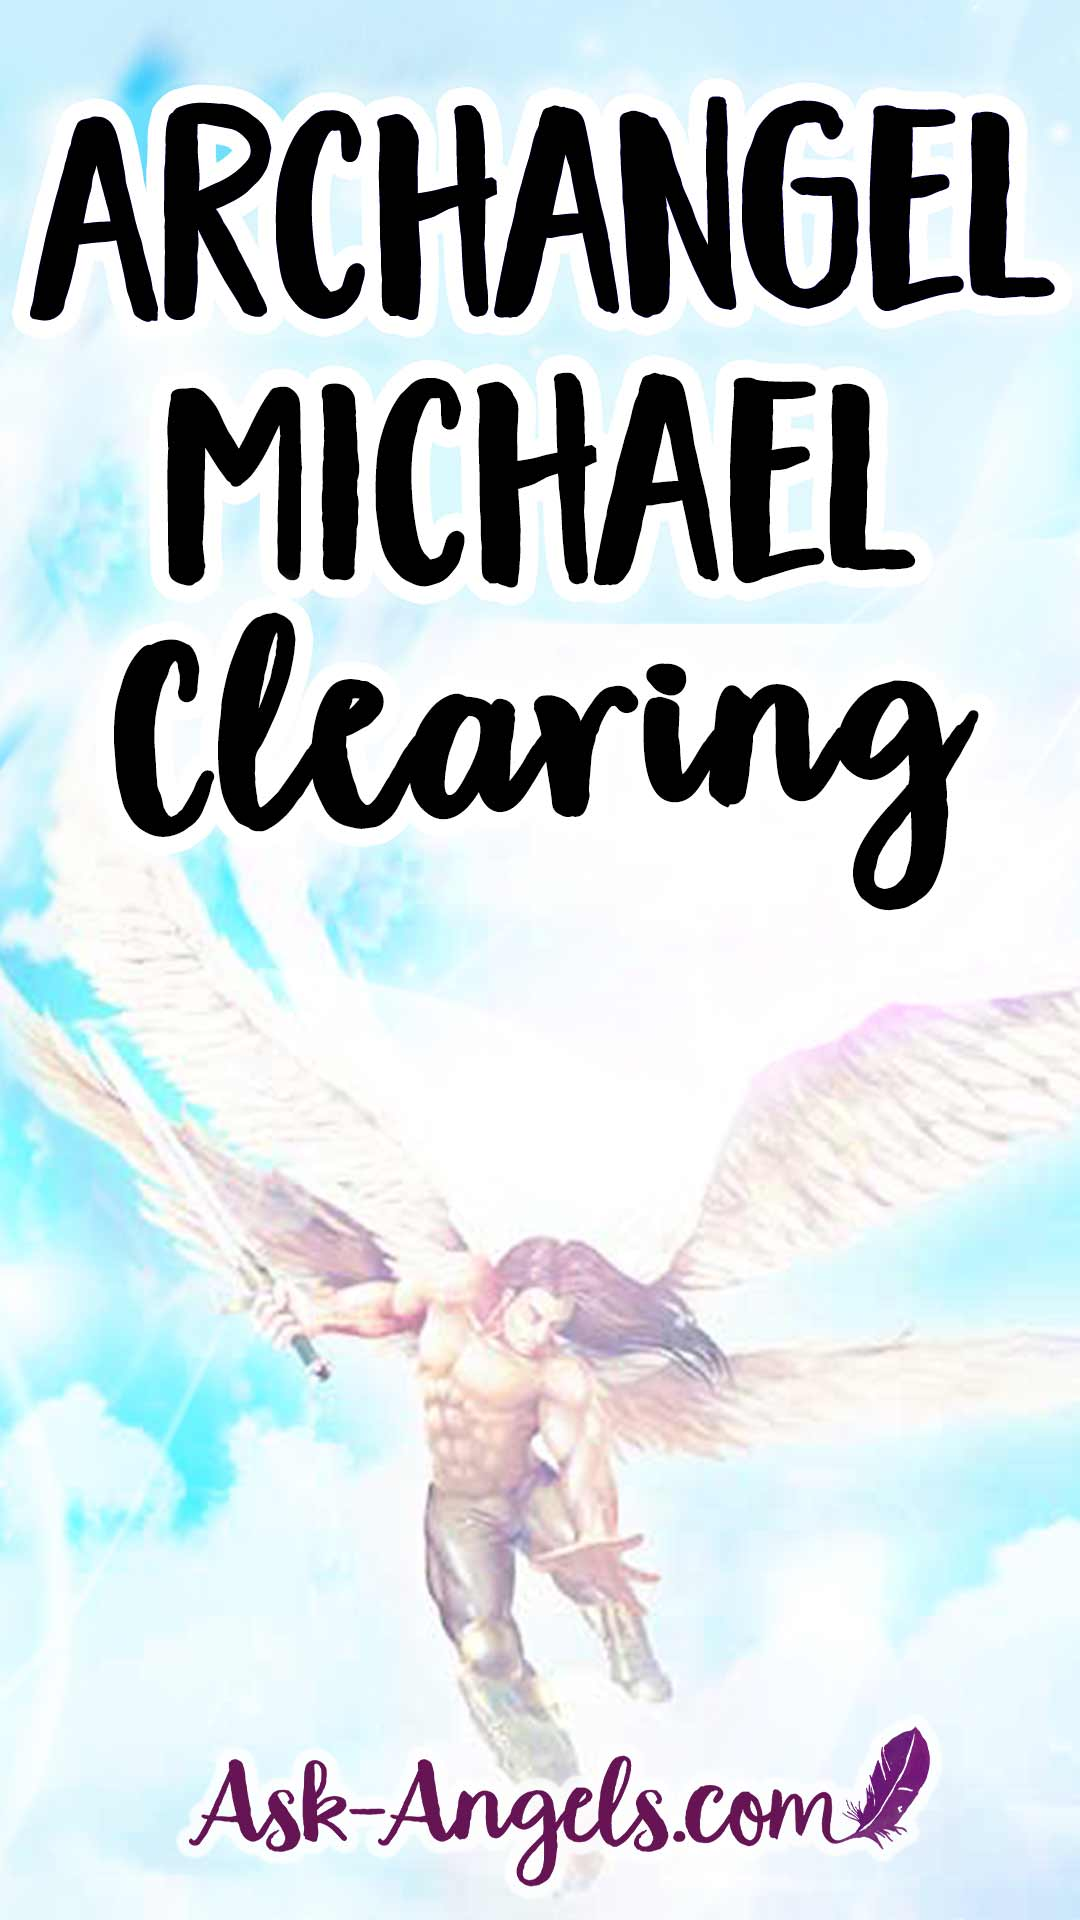 Archangel Michael Clearing